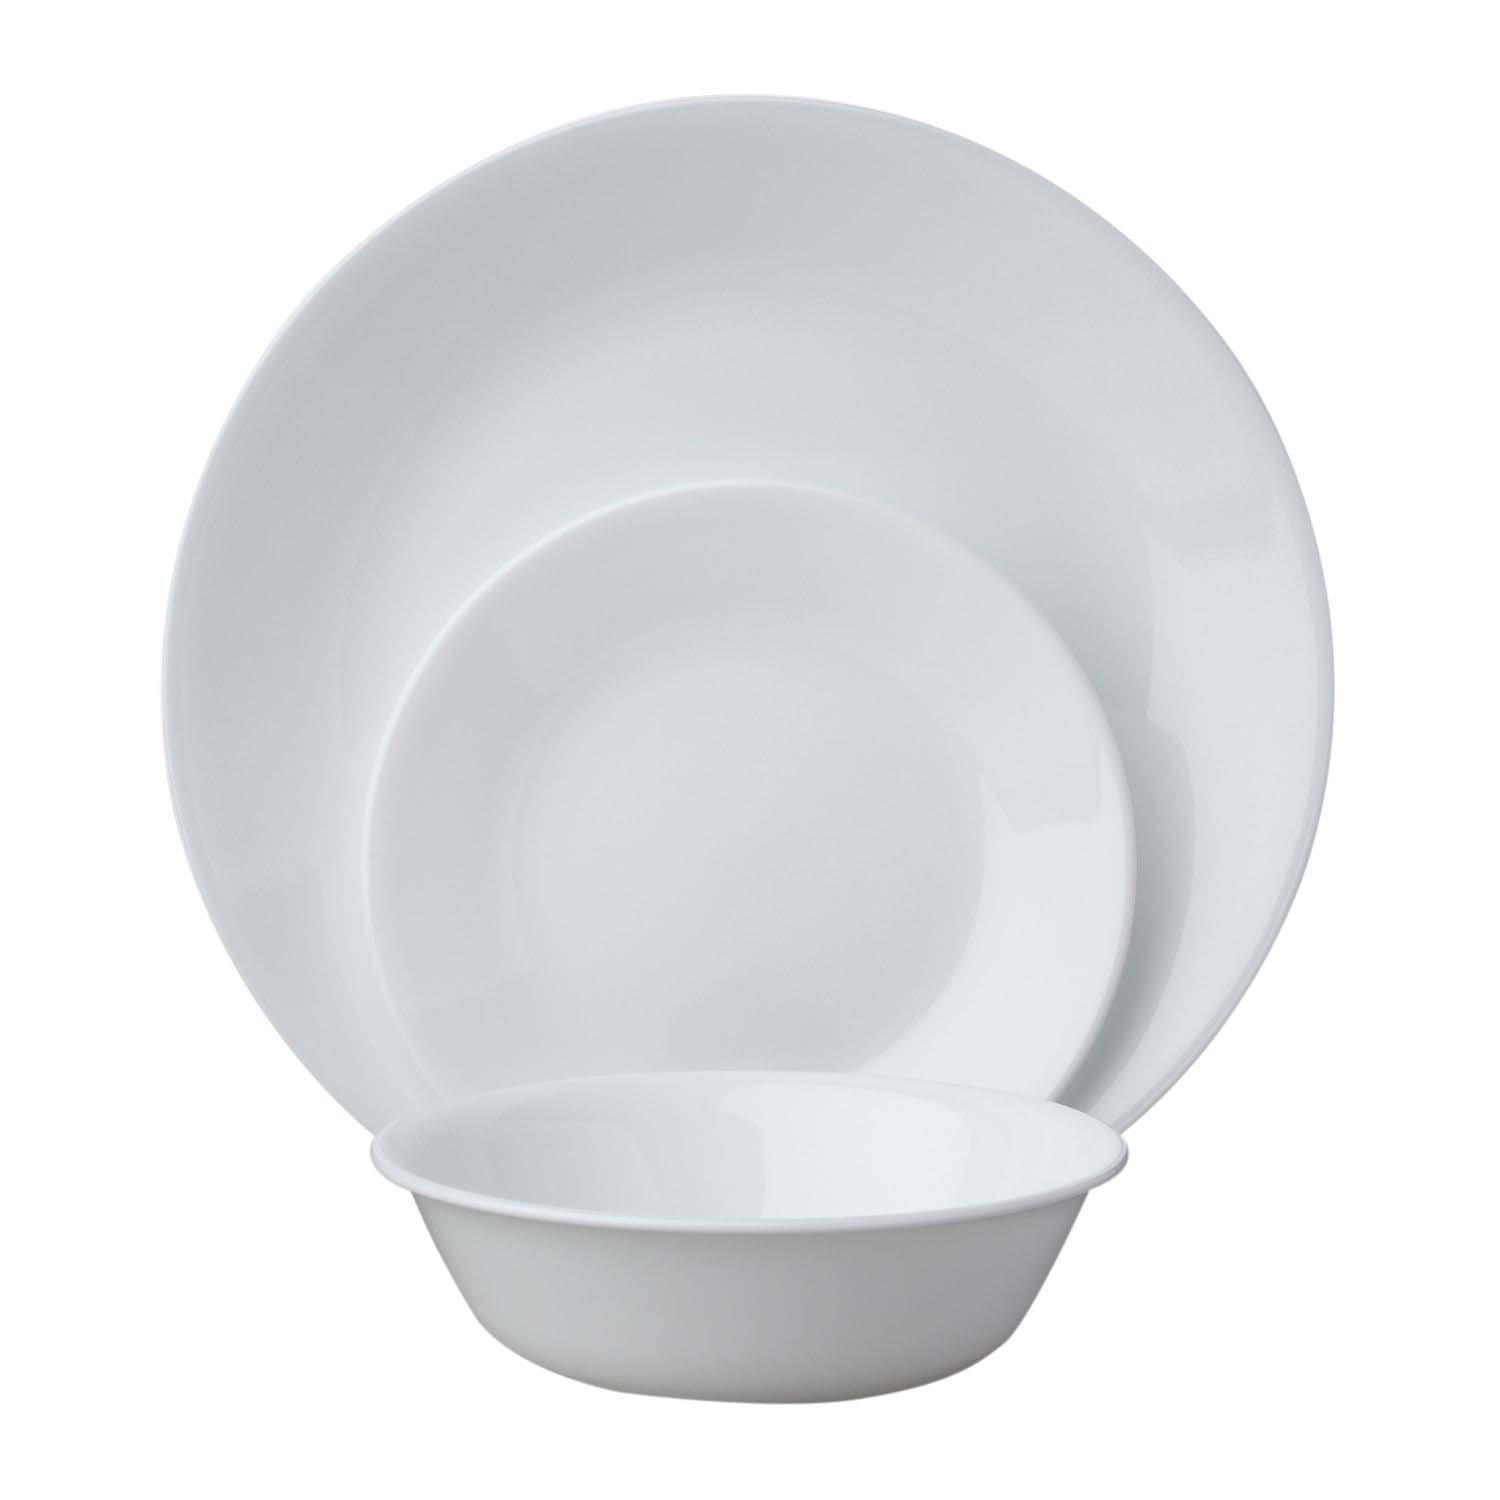 Corelle Livingware 18-Piece Dinnerware Set, Winter Frost White, Service for 6 (1088609) by Corelle (Image #1)